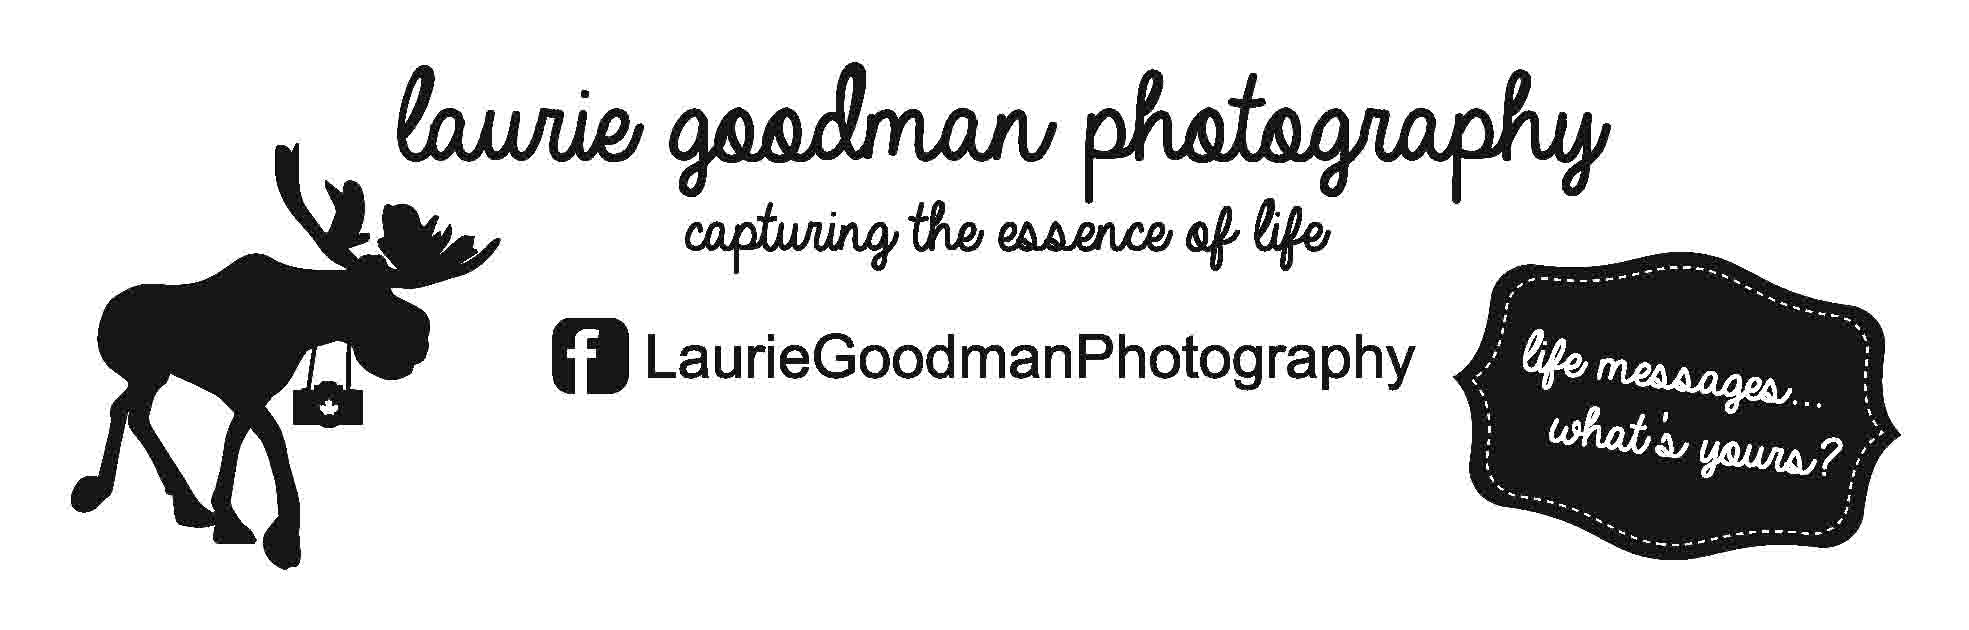 Laurie Goodman Photography